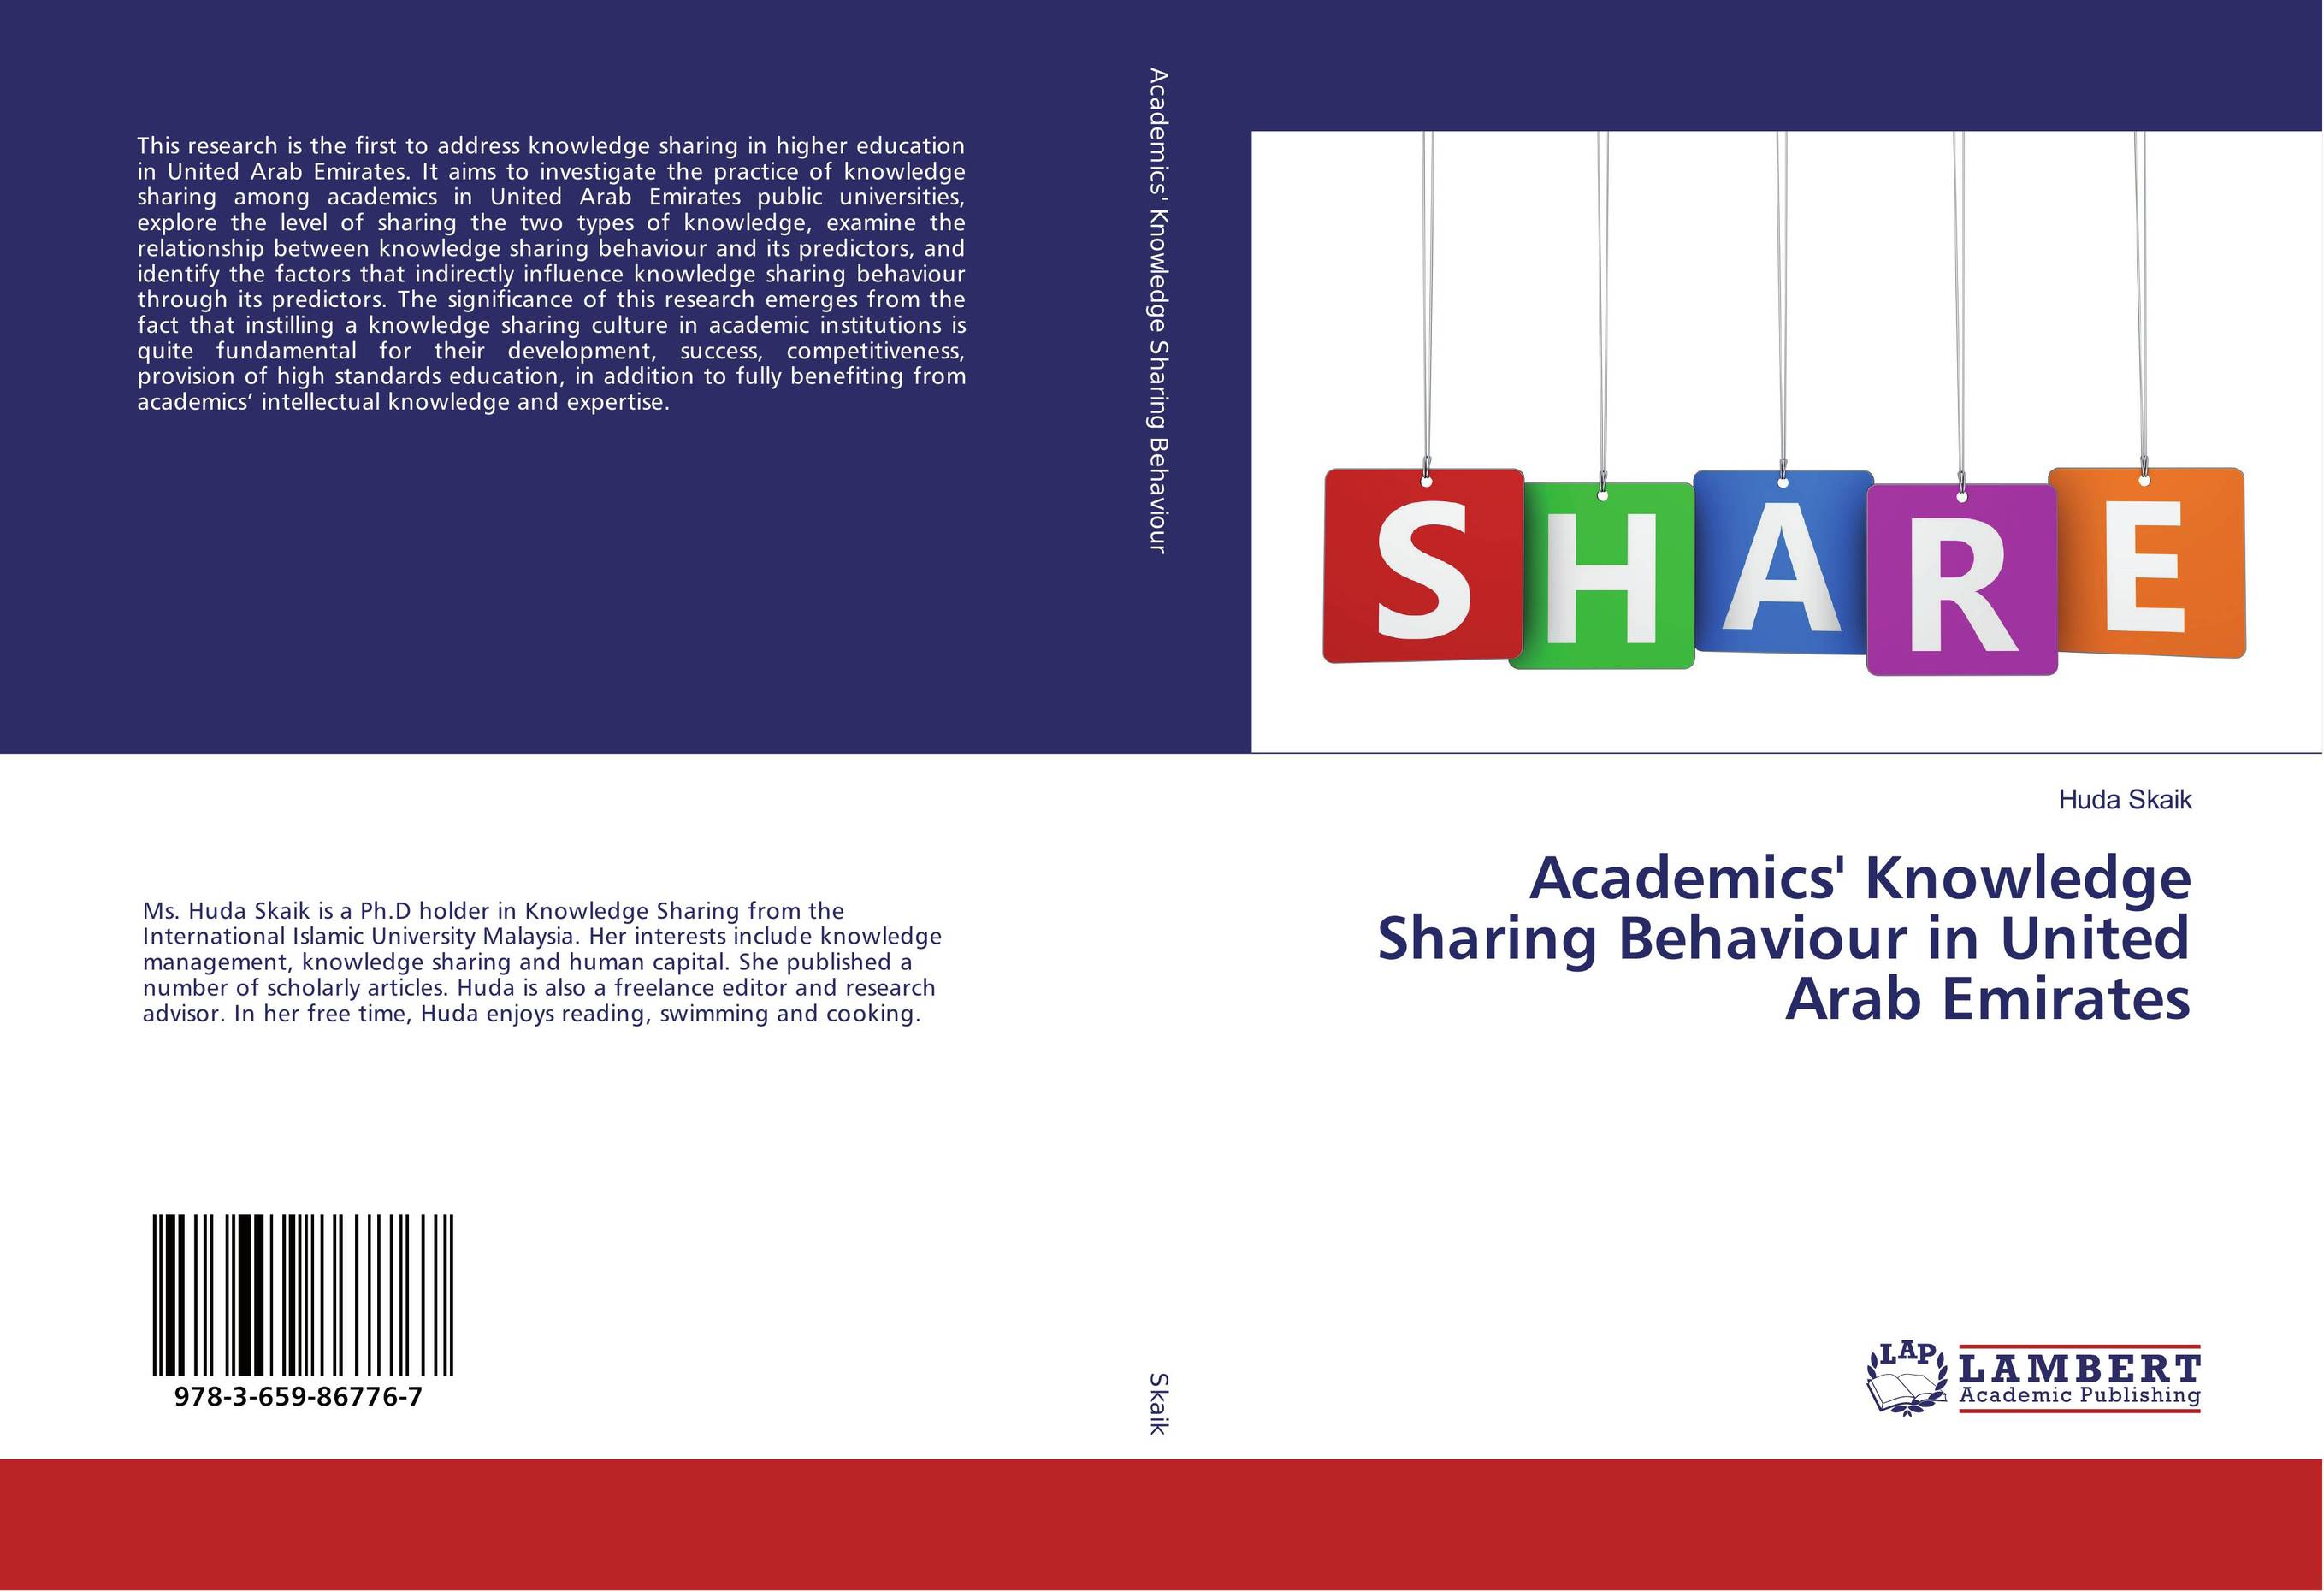 Academics' Knowledge Sharing Behaviour in United Arab Emirates sharing is caring